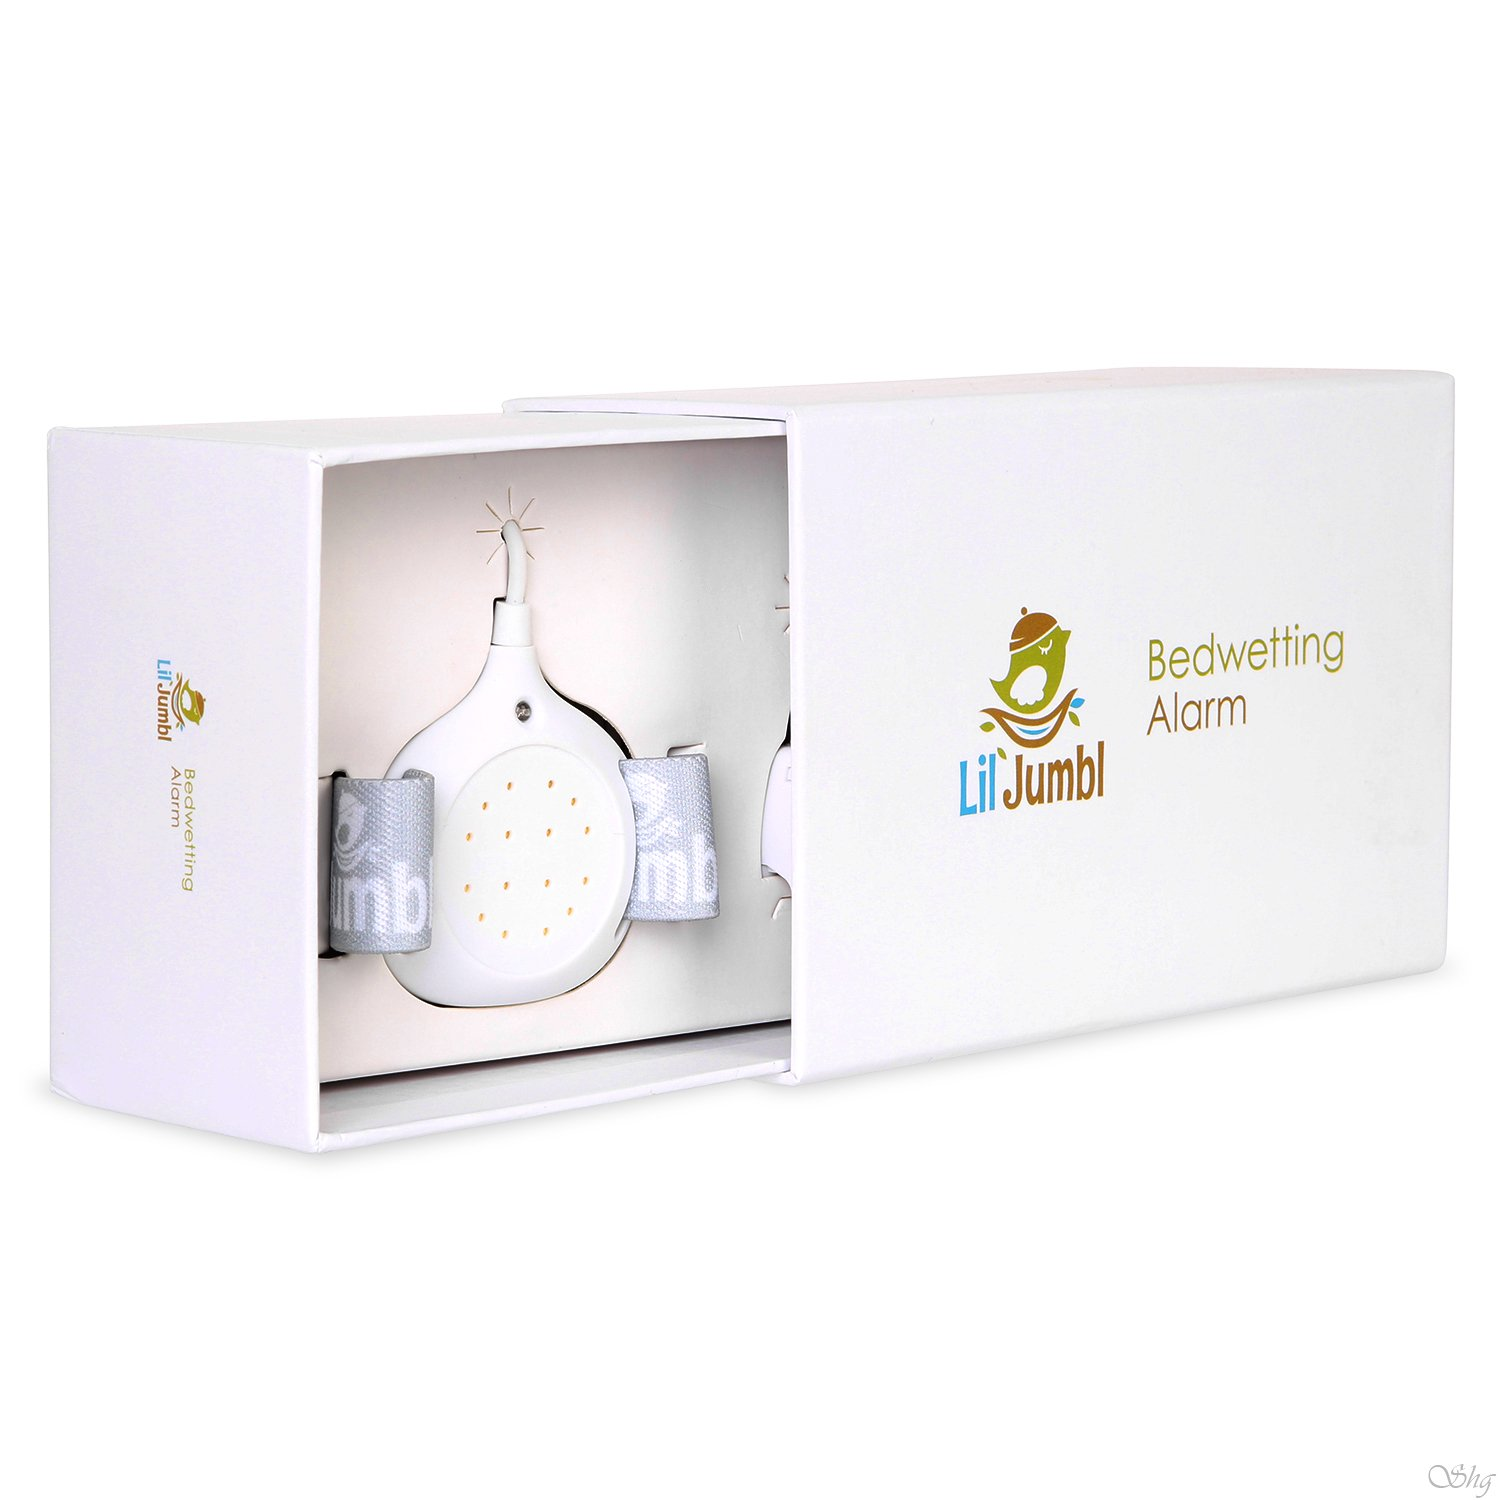 37458f20e0 Get Quotations · Bedwetting Alarm Nocturnal Enuresis Potty Training  Solution for Boys   Girls. Discreet